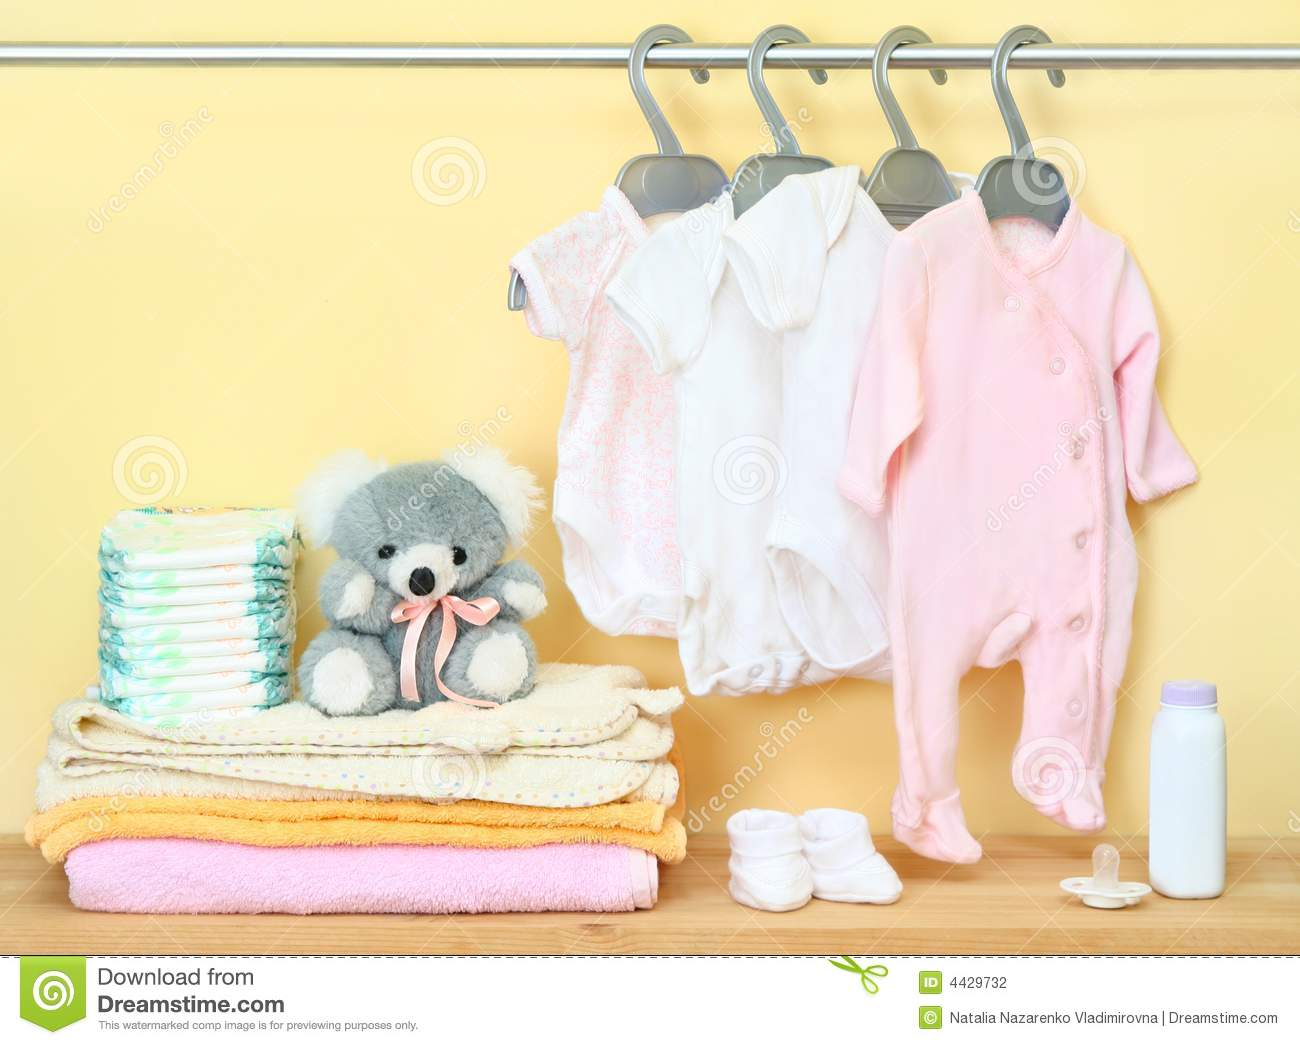 Baby accessories store business plan bundle